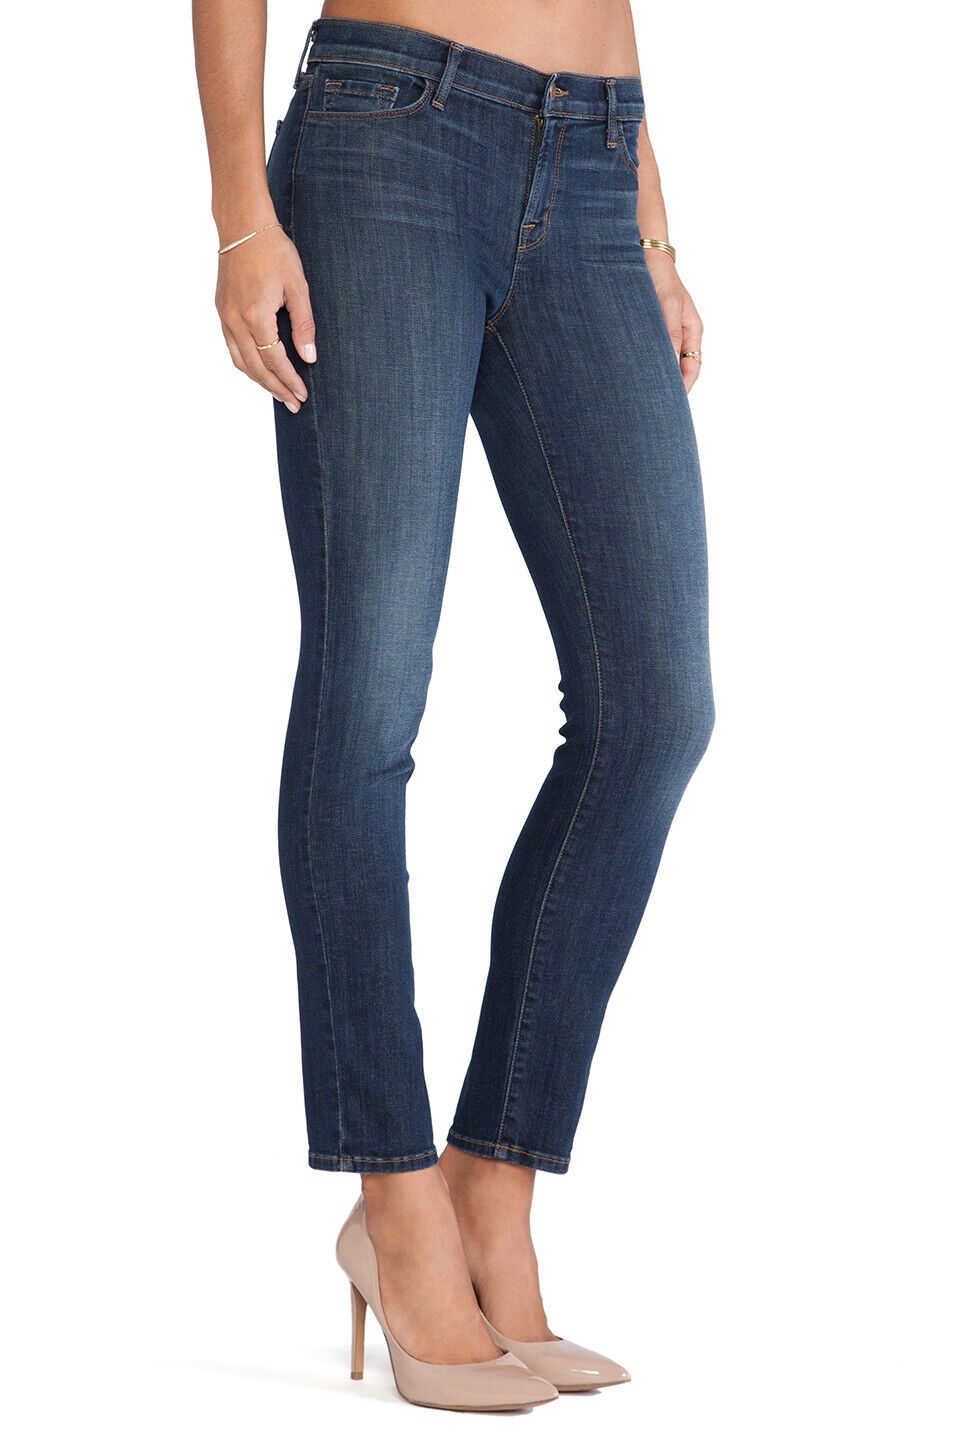 J Brand - 811 - Mid Rise Super Stretch Skinny Jeans in Storm - Size 26